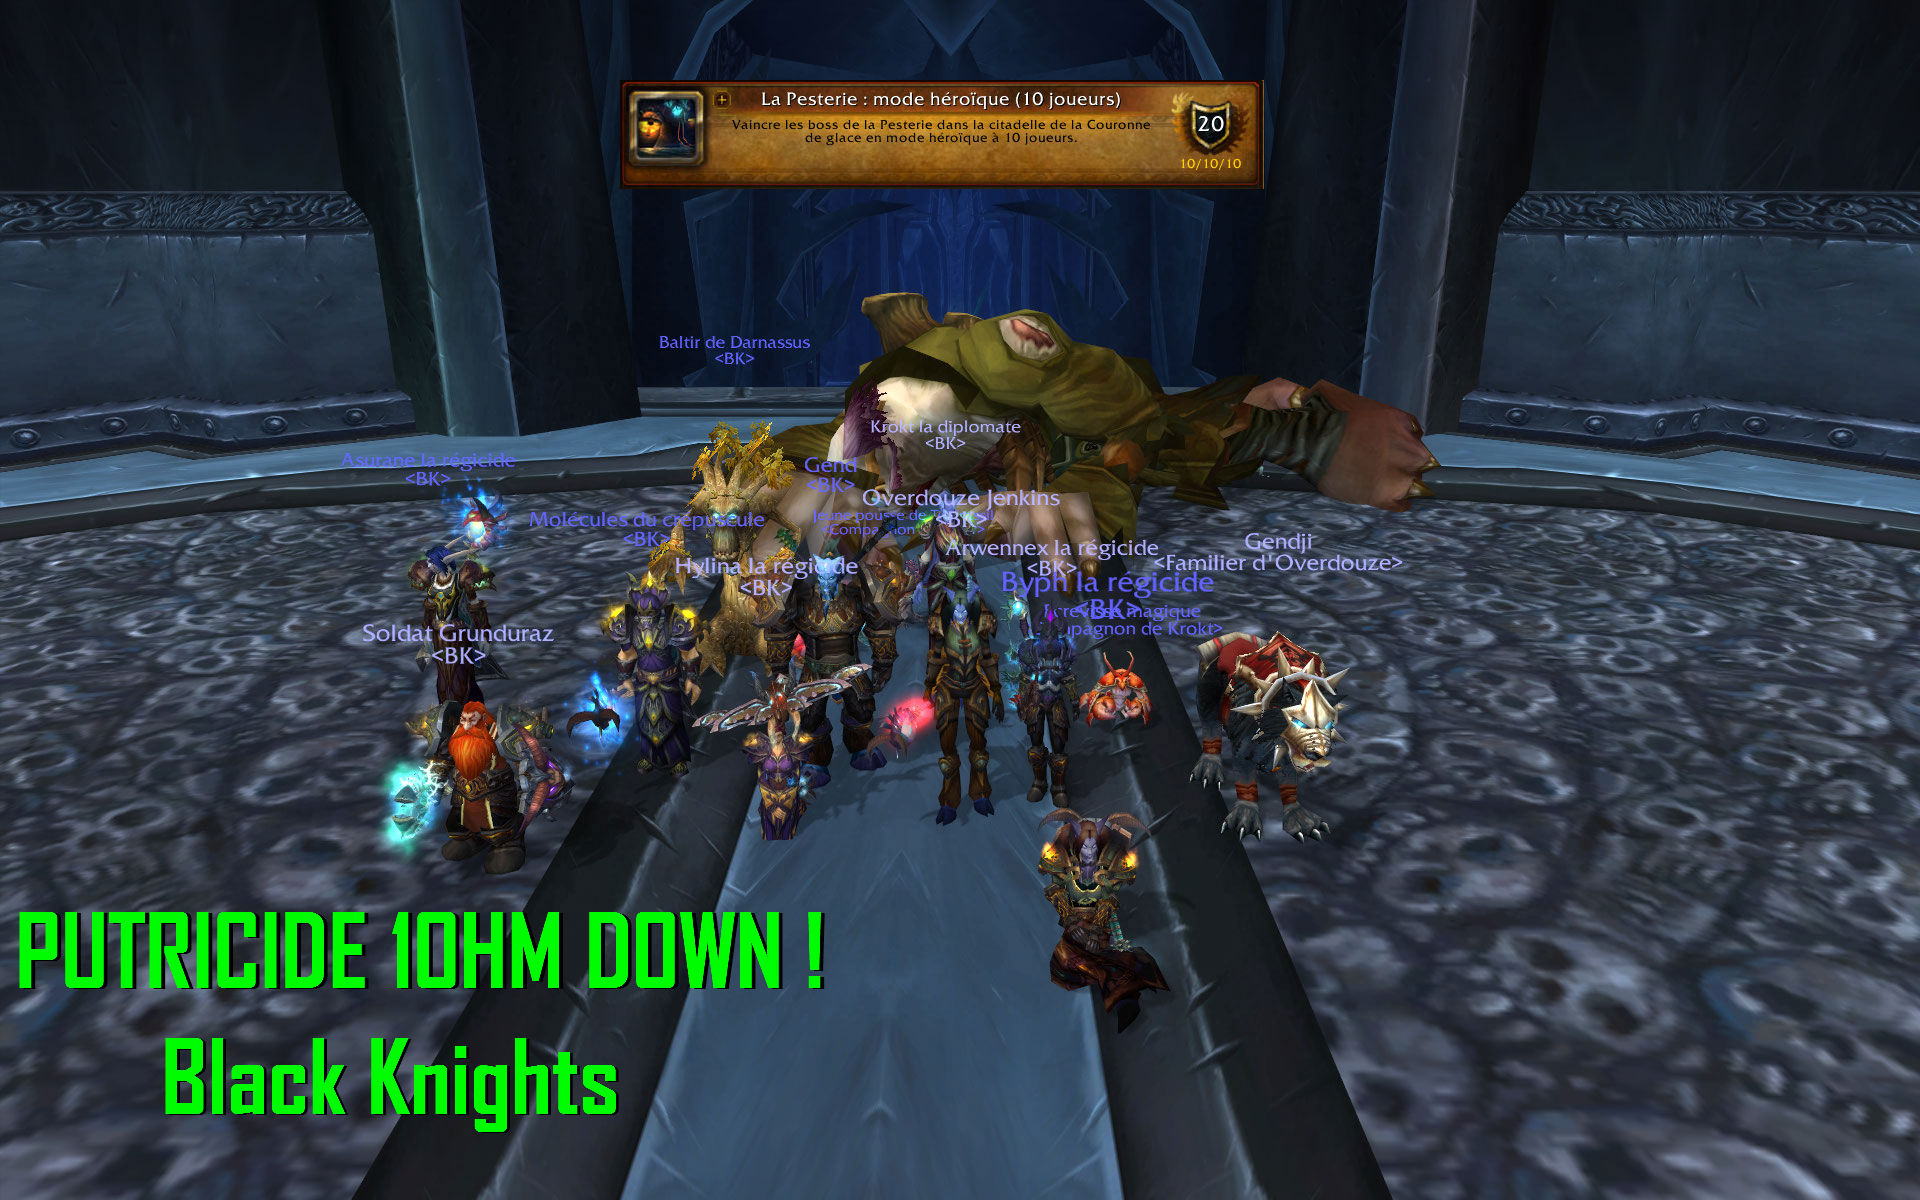 Putricide 10HM Down - 1920 x 1200 - Putricide 10HM Down, Team Black Knights !